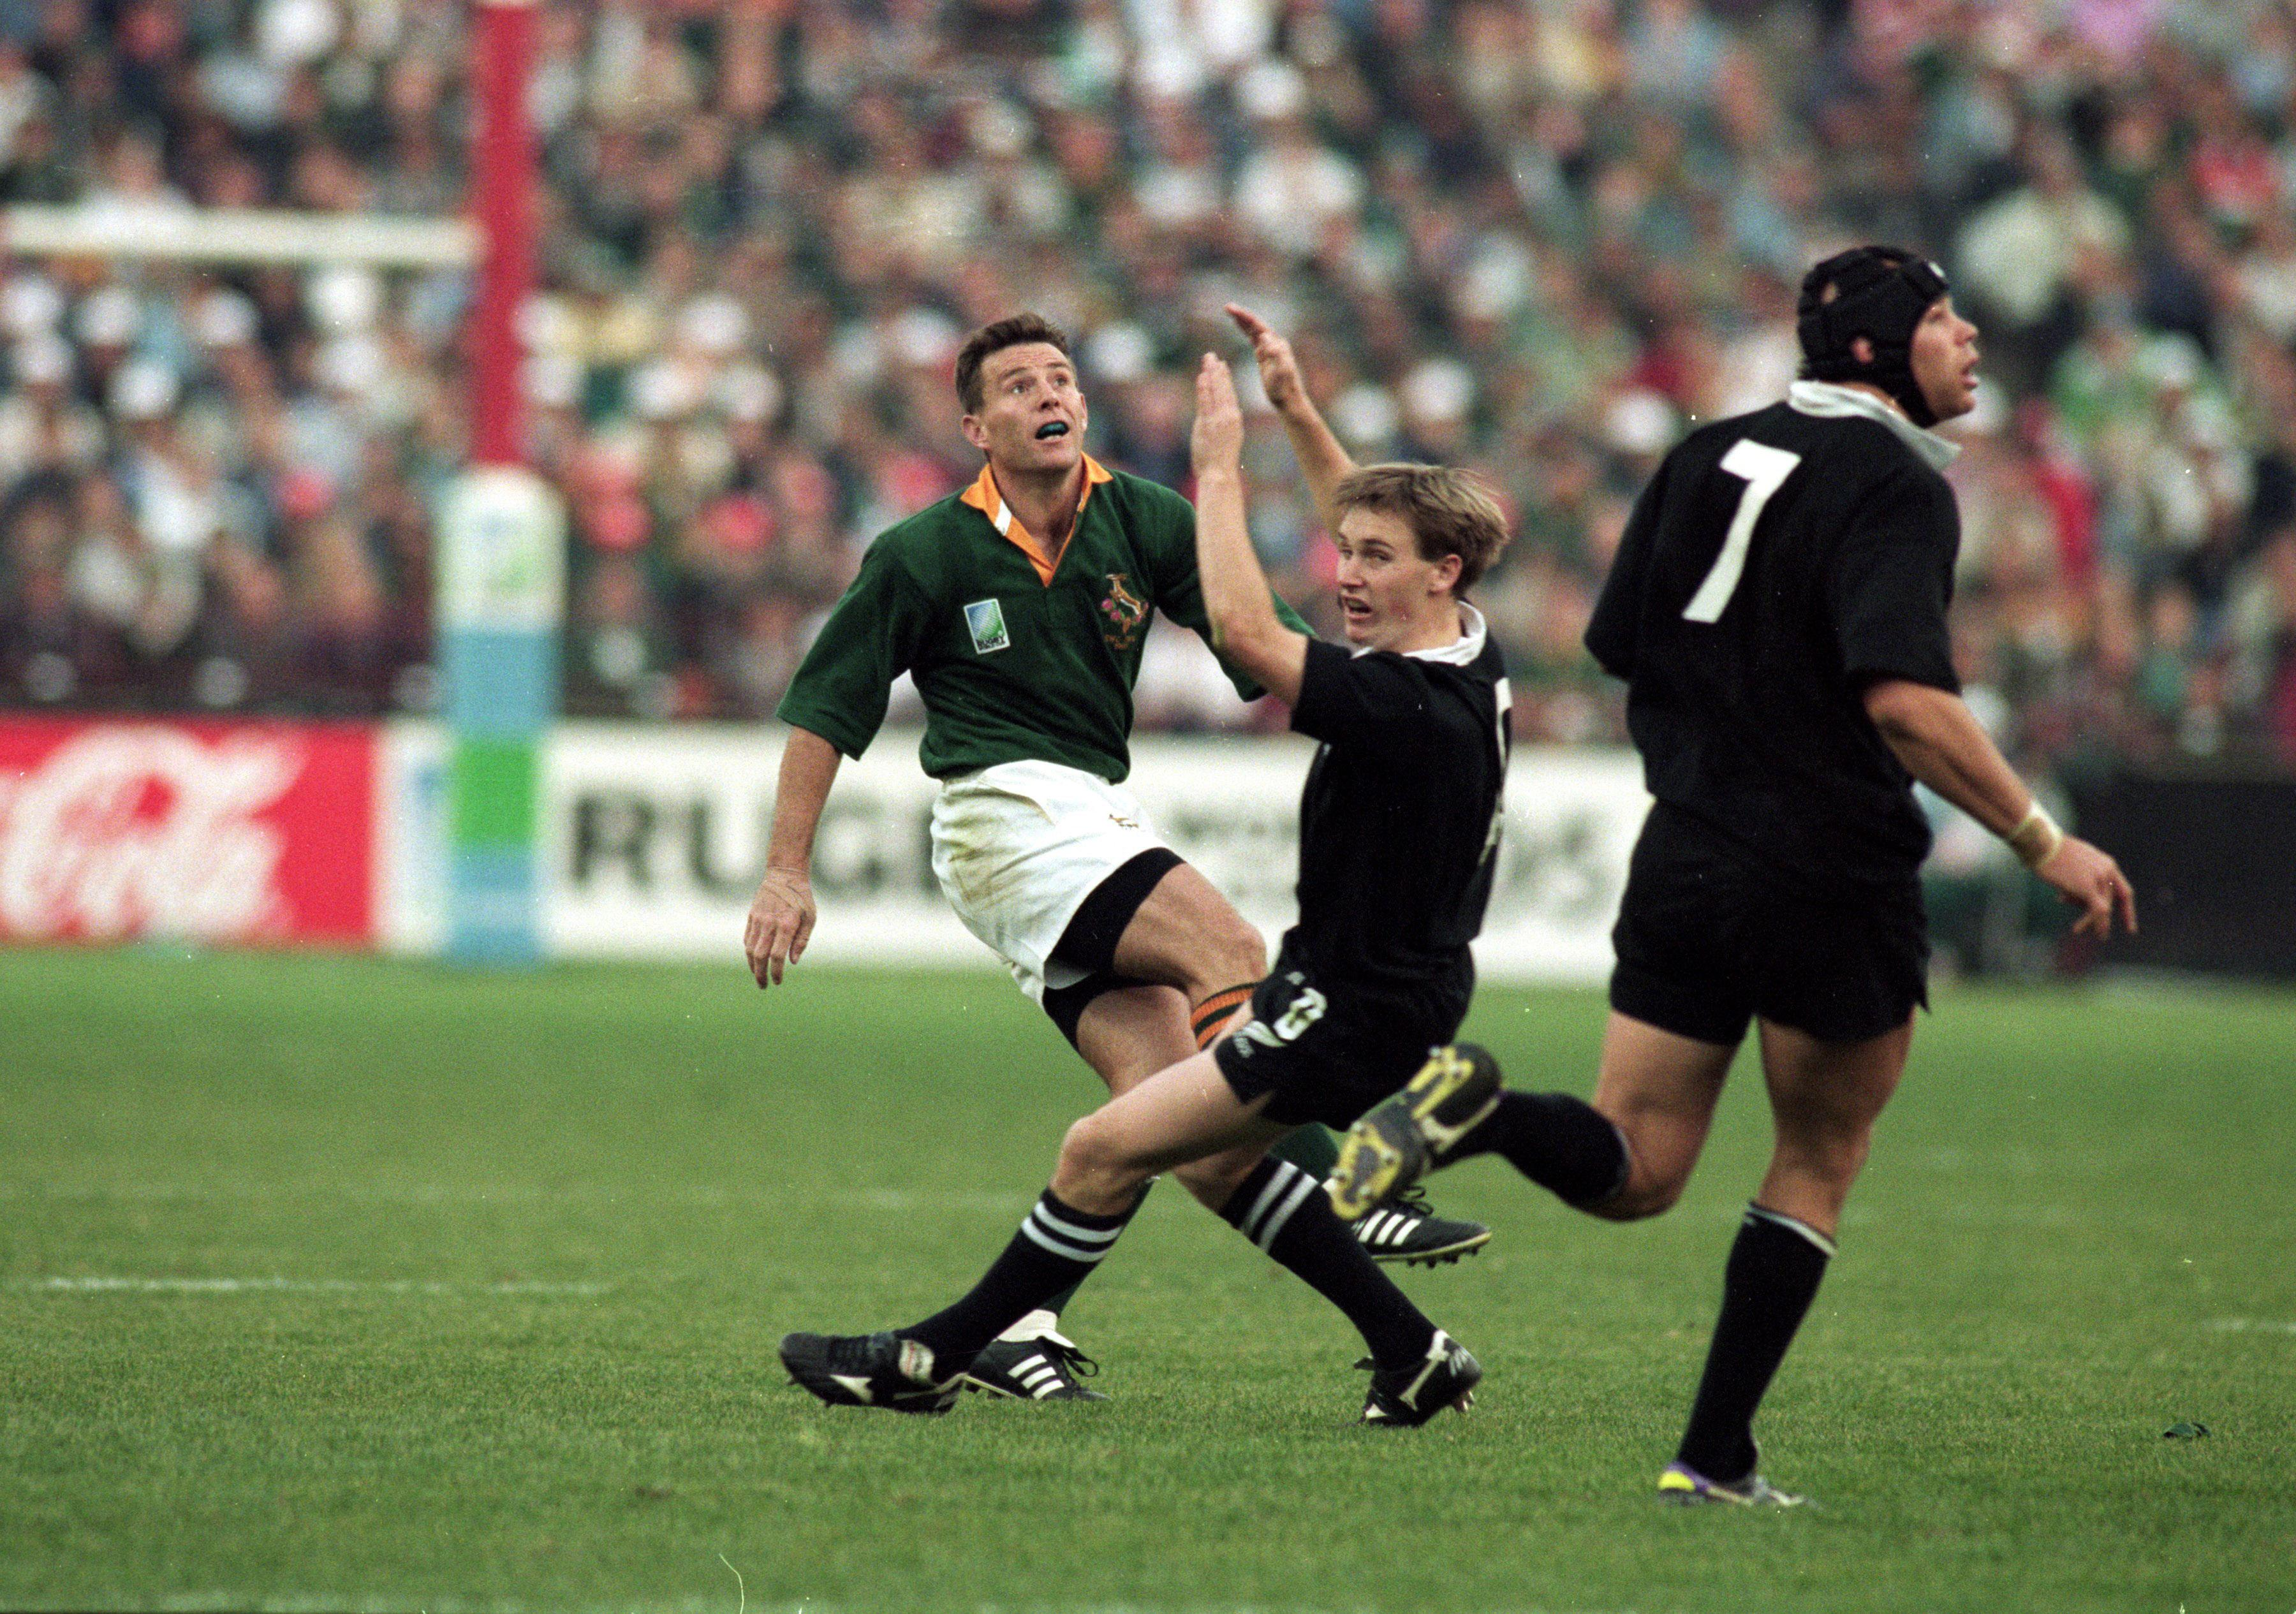 Rugby World Cup Rewind Rwc 1995 Rugby World Cup Rugbyworldcup Com